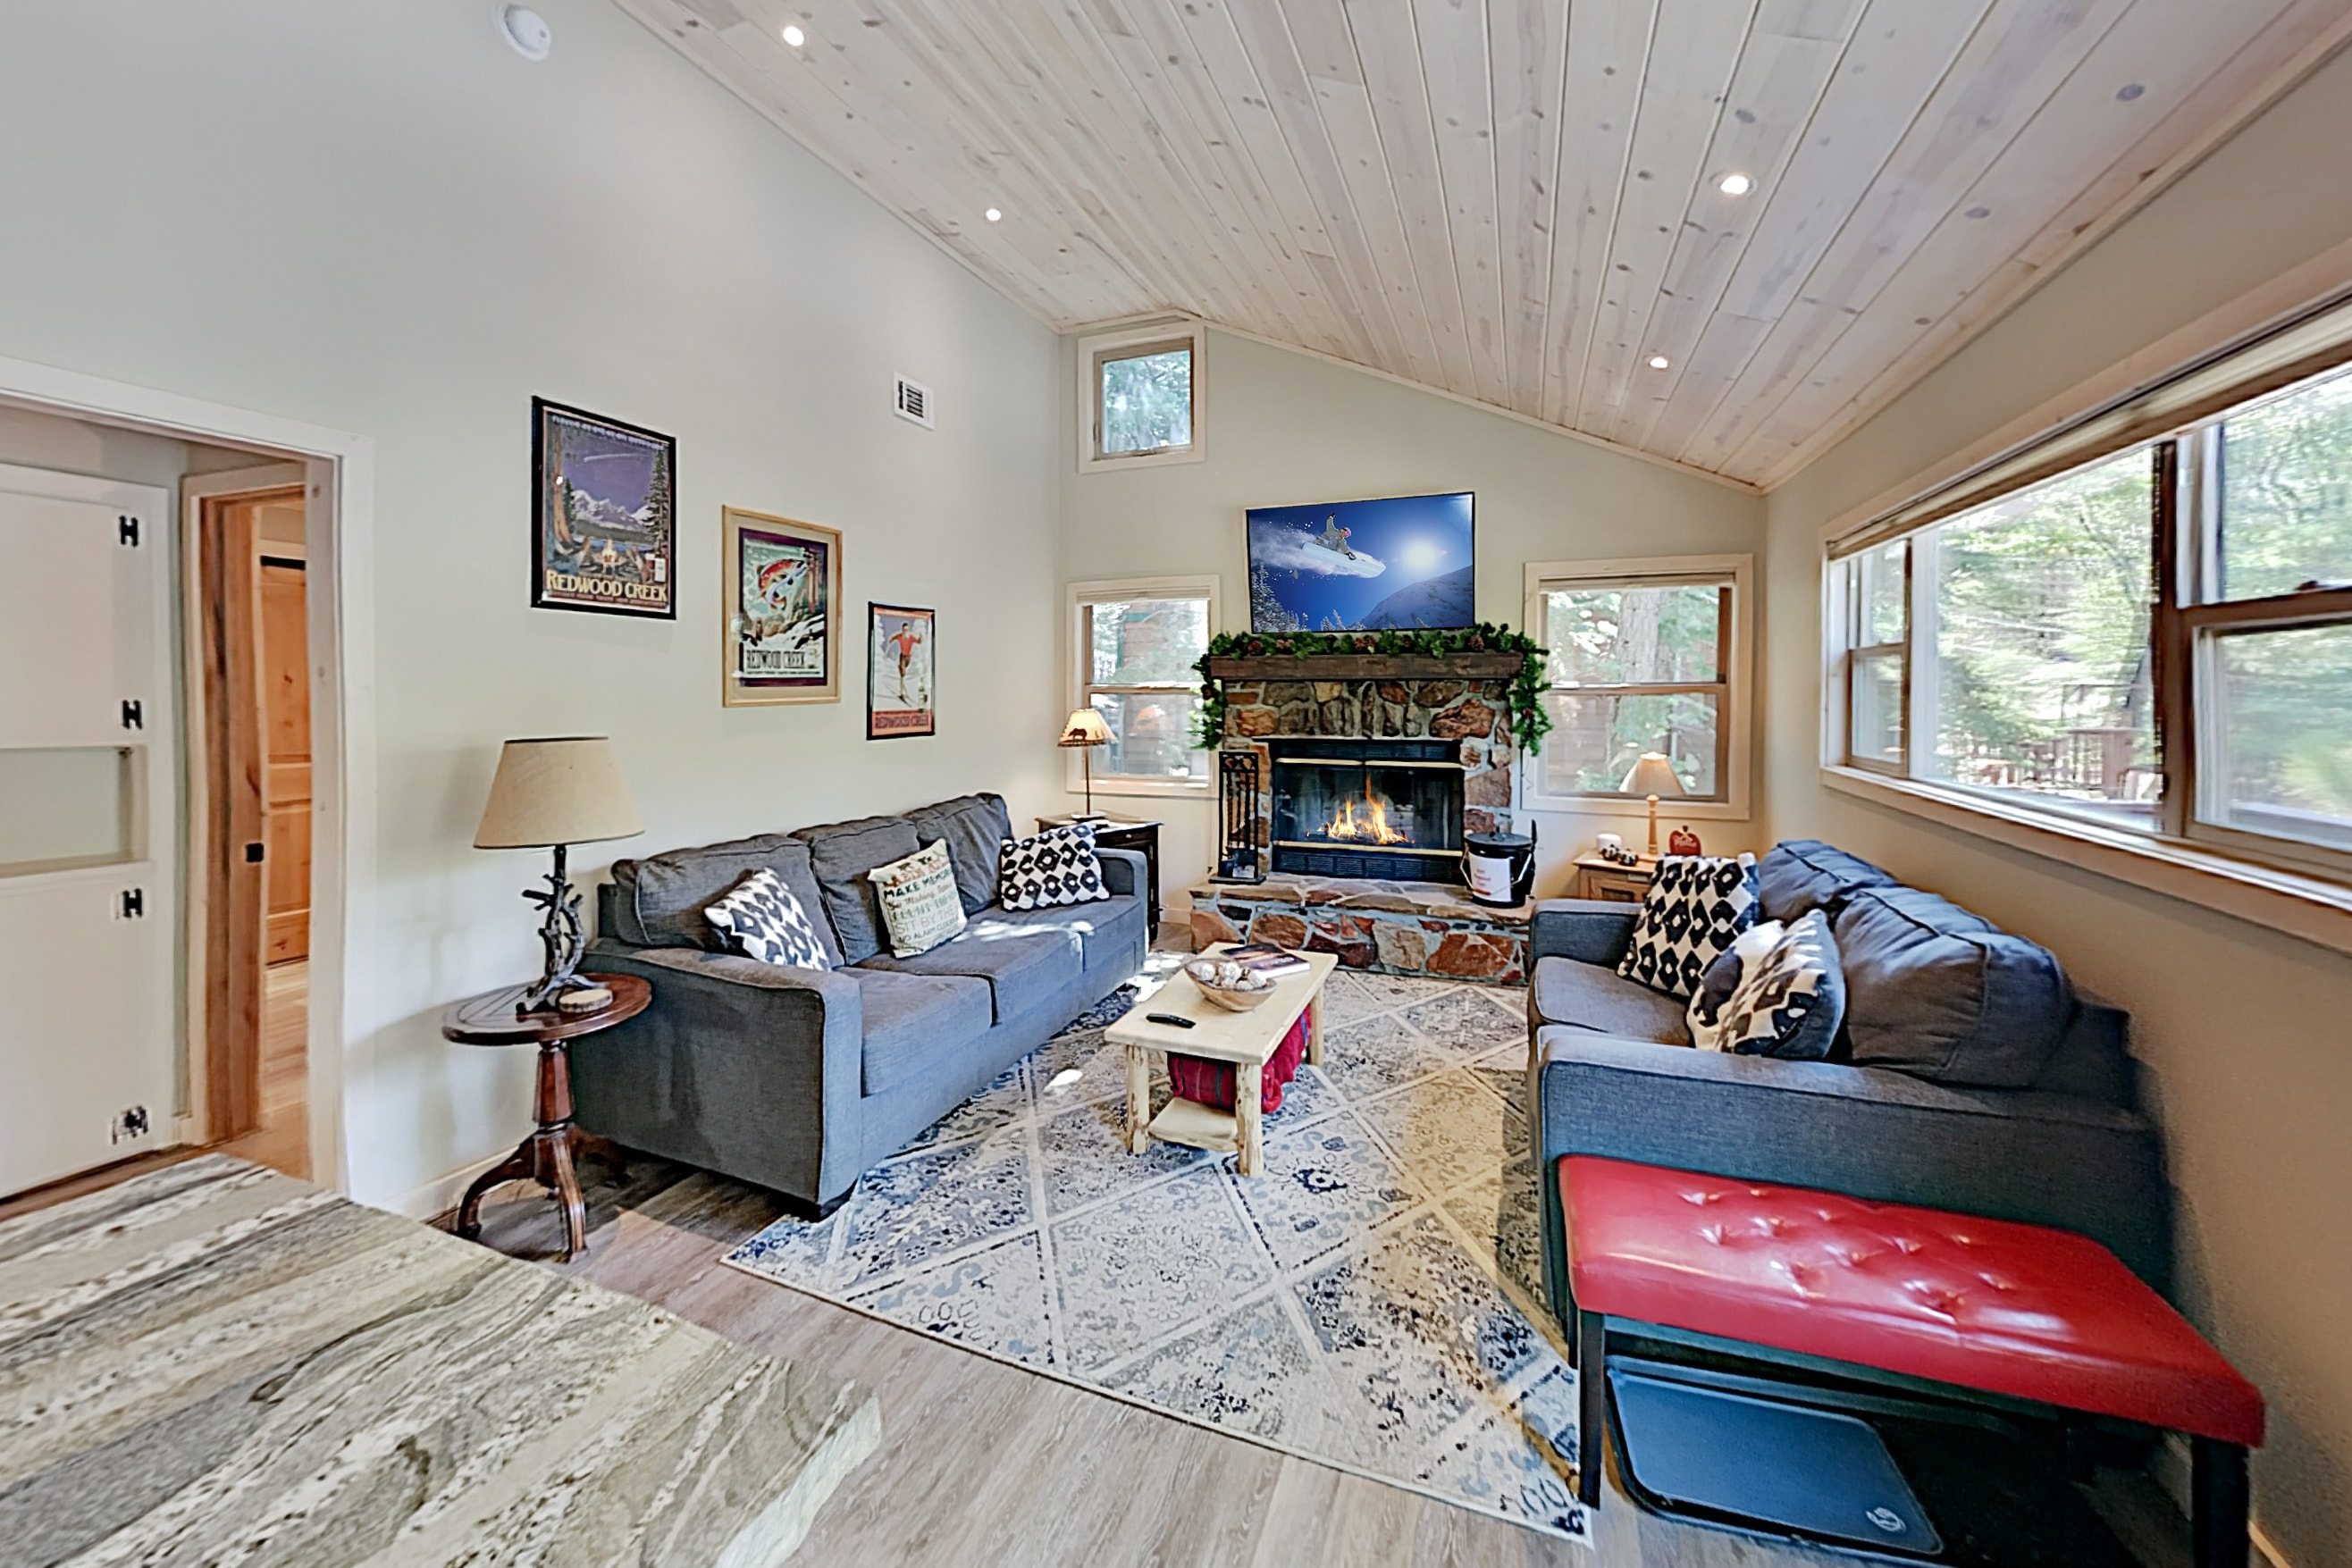 Property Image 2 - Updated Vintage Cabin: Hot Tub, Near Skiing, Golf